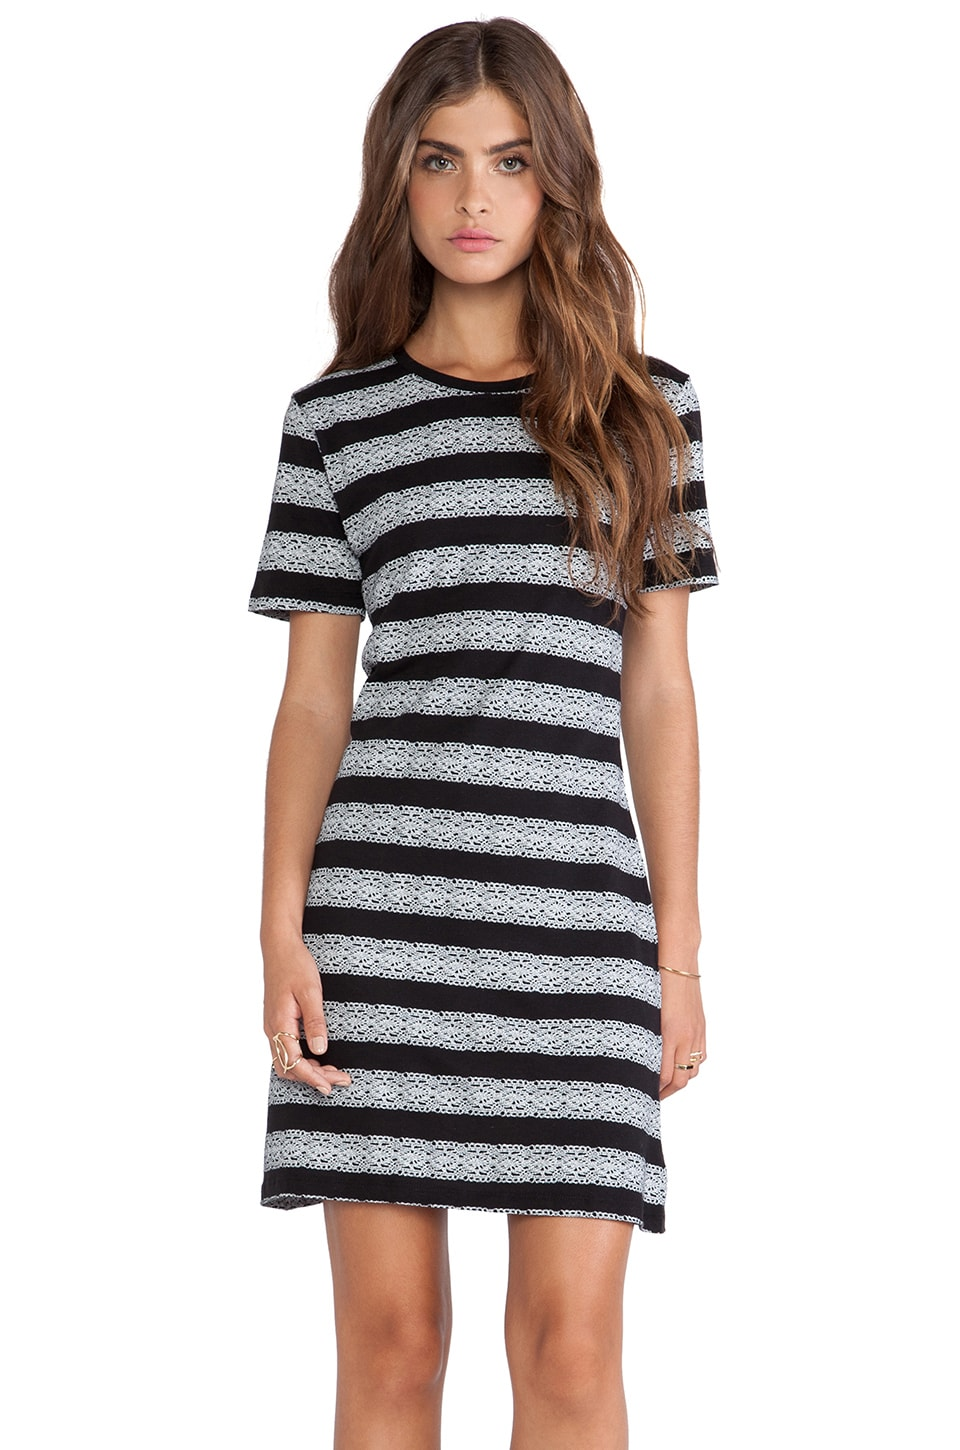 Theory Ilace Dress in Black & White